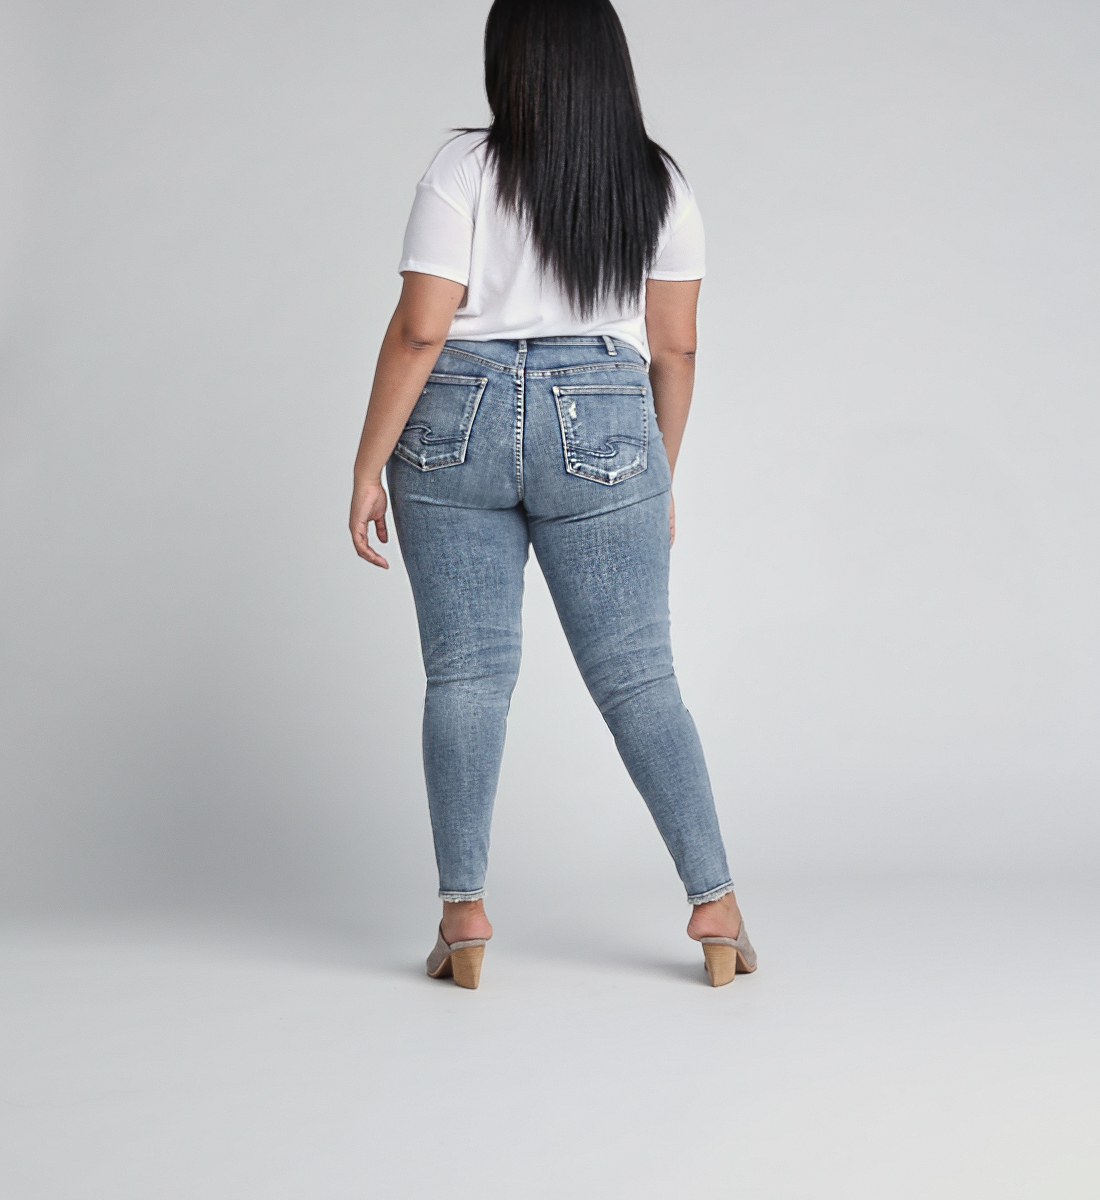 Avery High Rise Skinny Leg Jeans Plus Size - Silver Jeans US